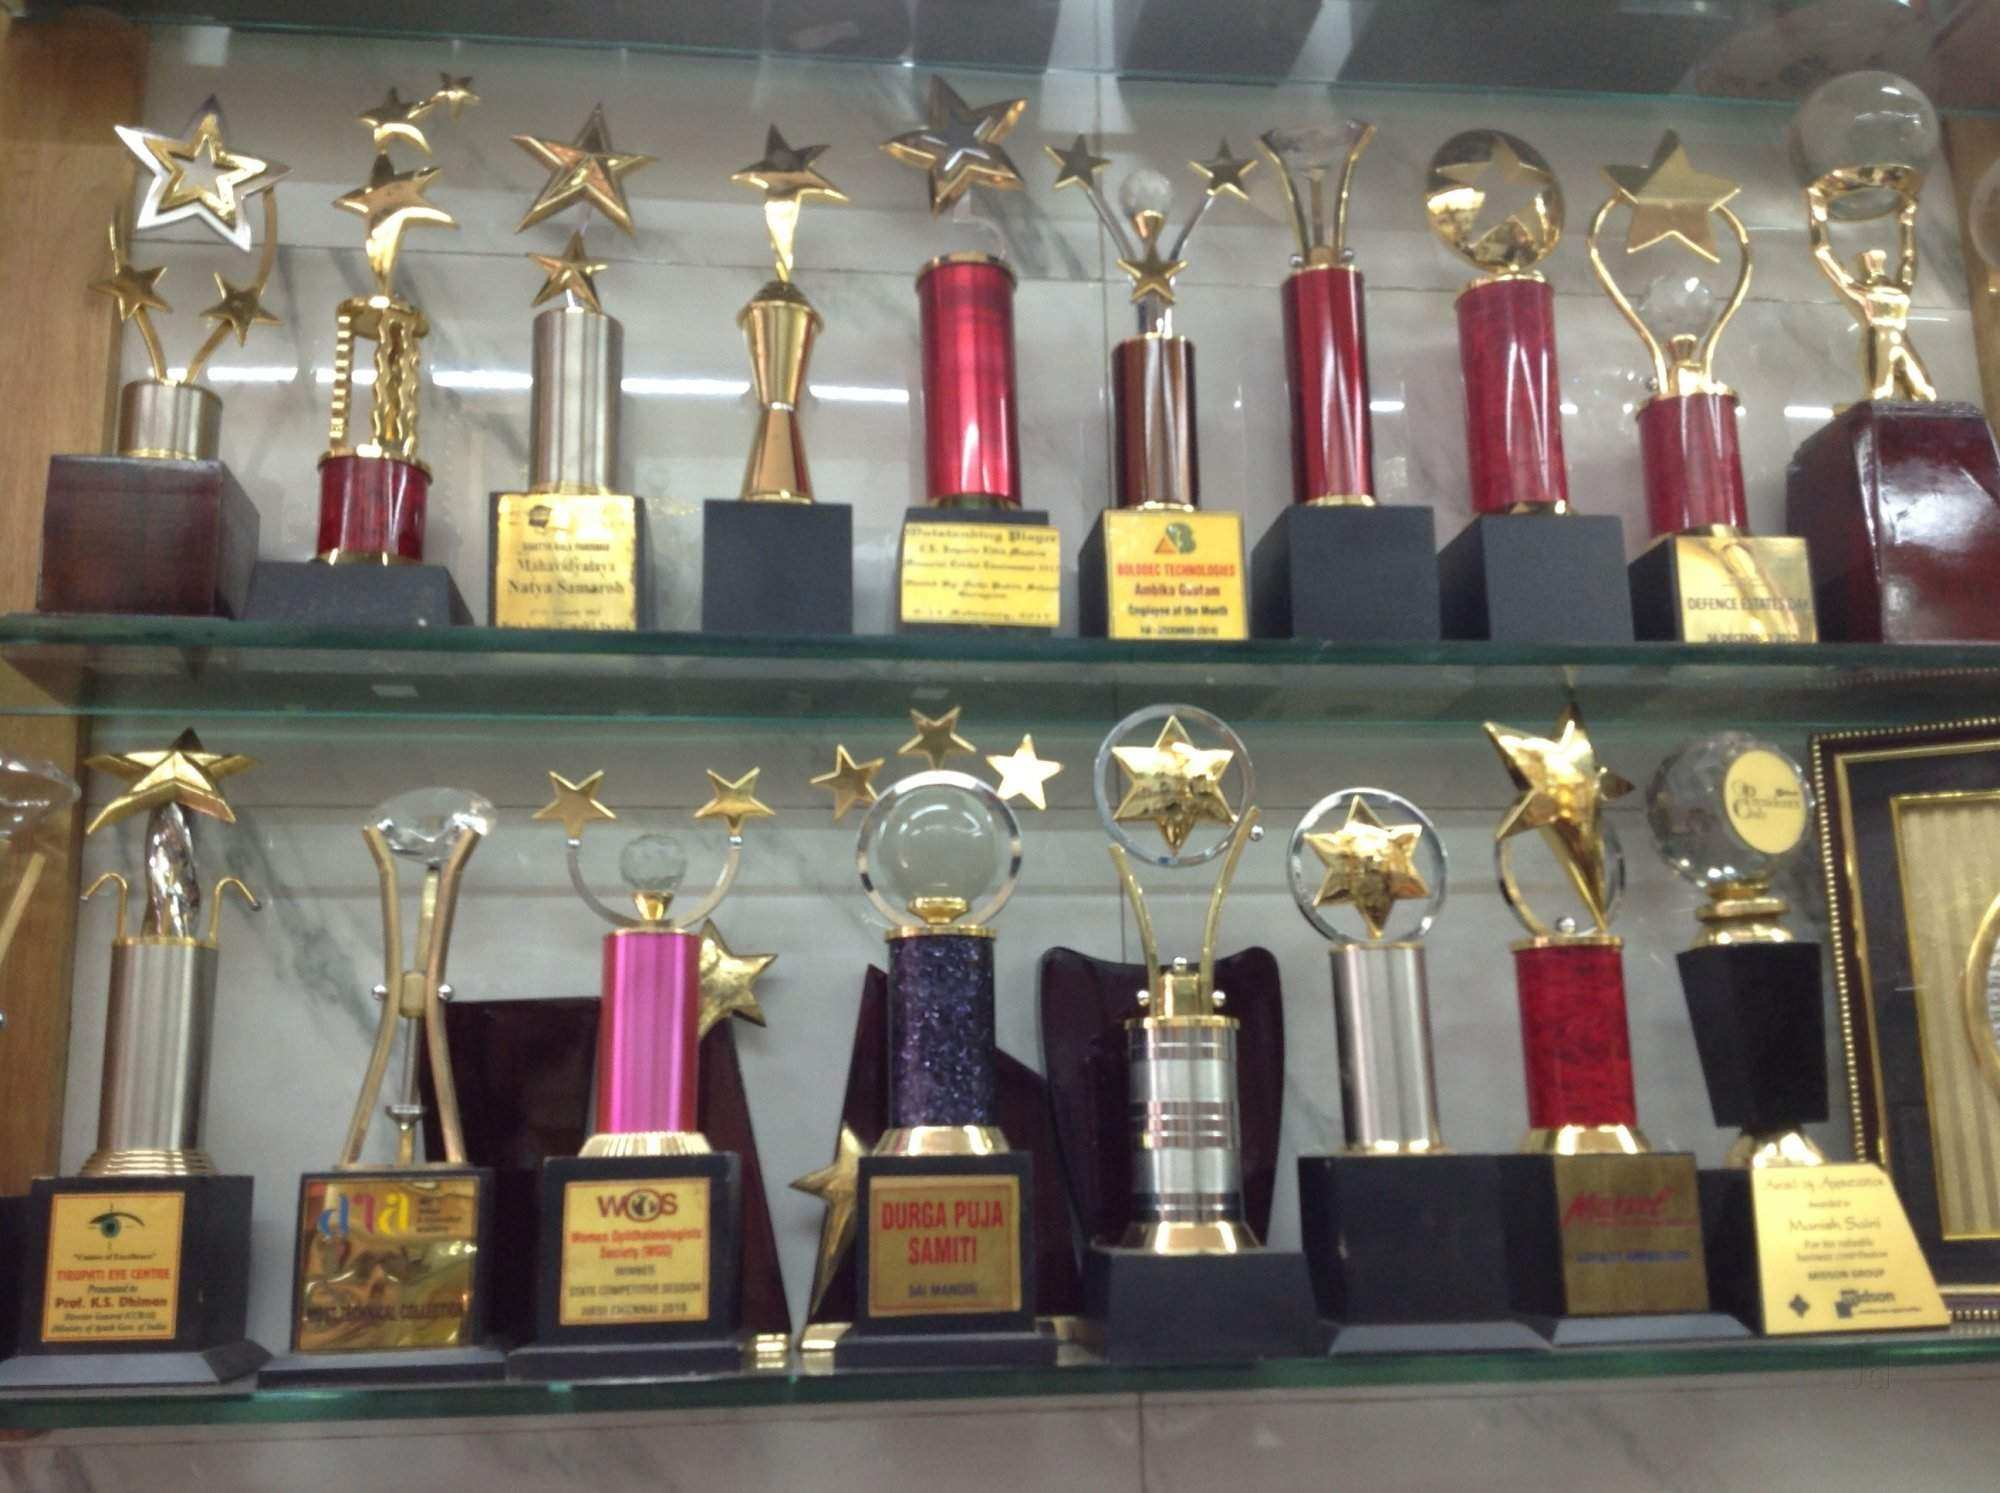 Delhi Trophy; The home of exceptional trophies